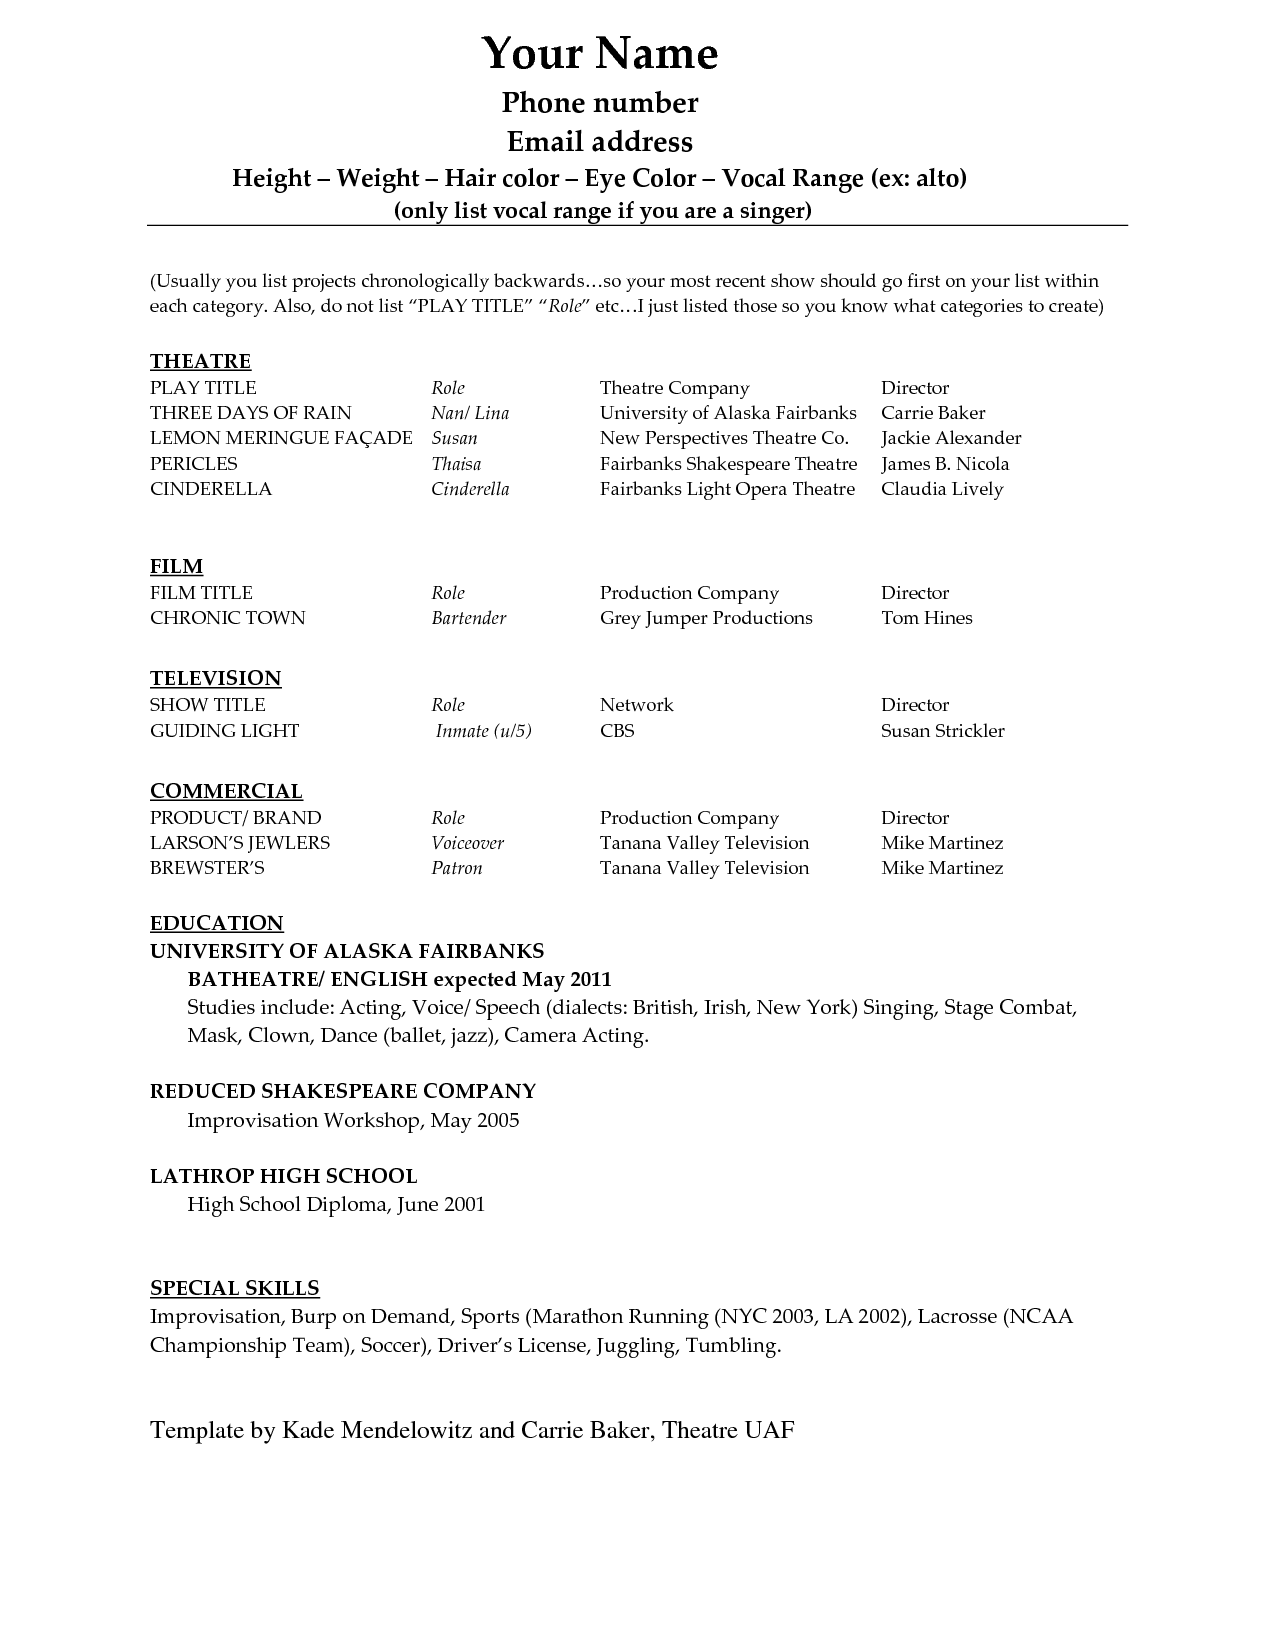 Resume Templates For Word 2007 Delectable Acting Resume Template Download Free  Httpwwwresumecareer